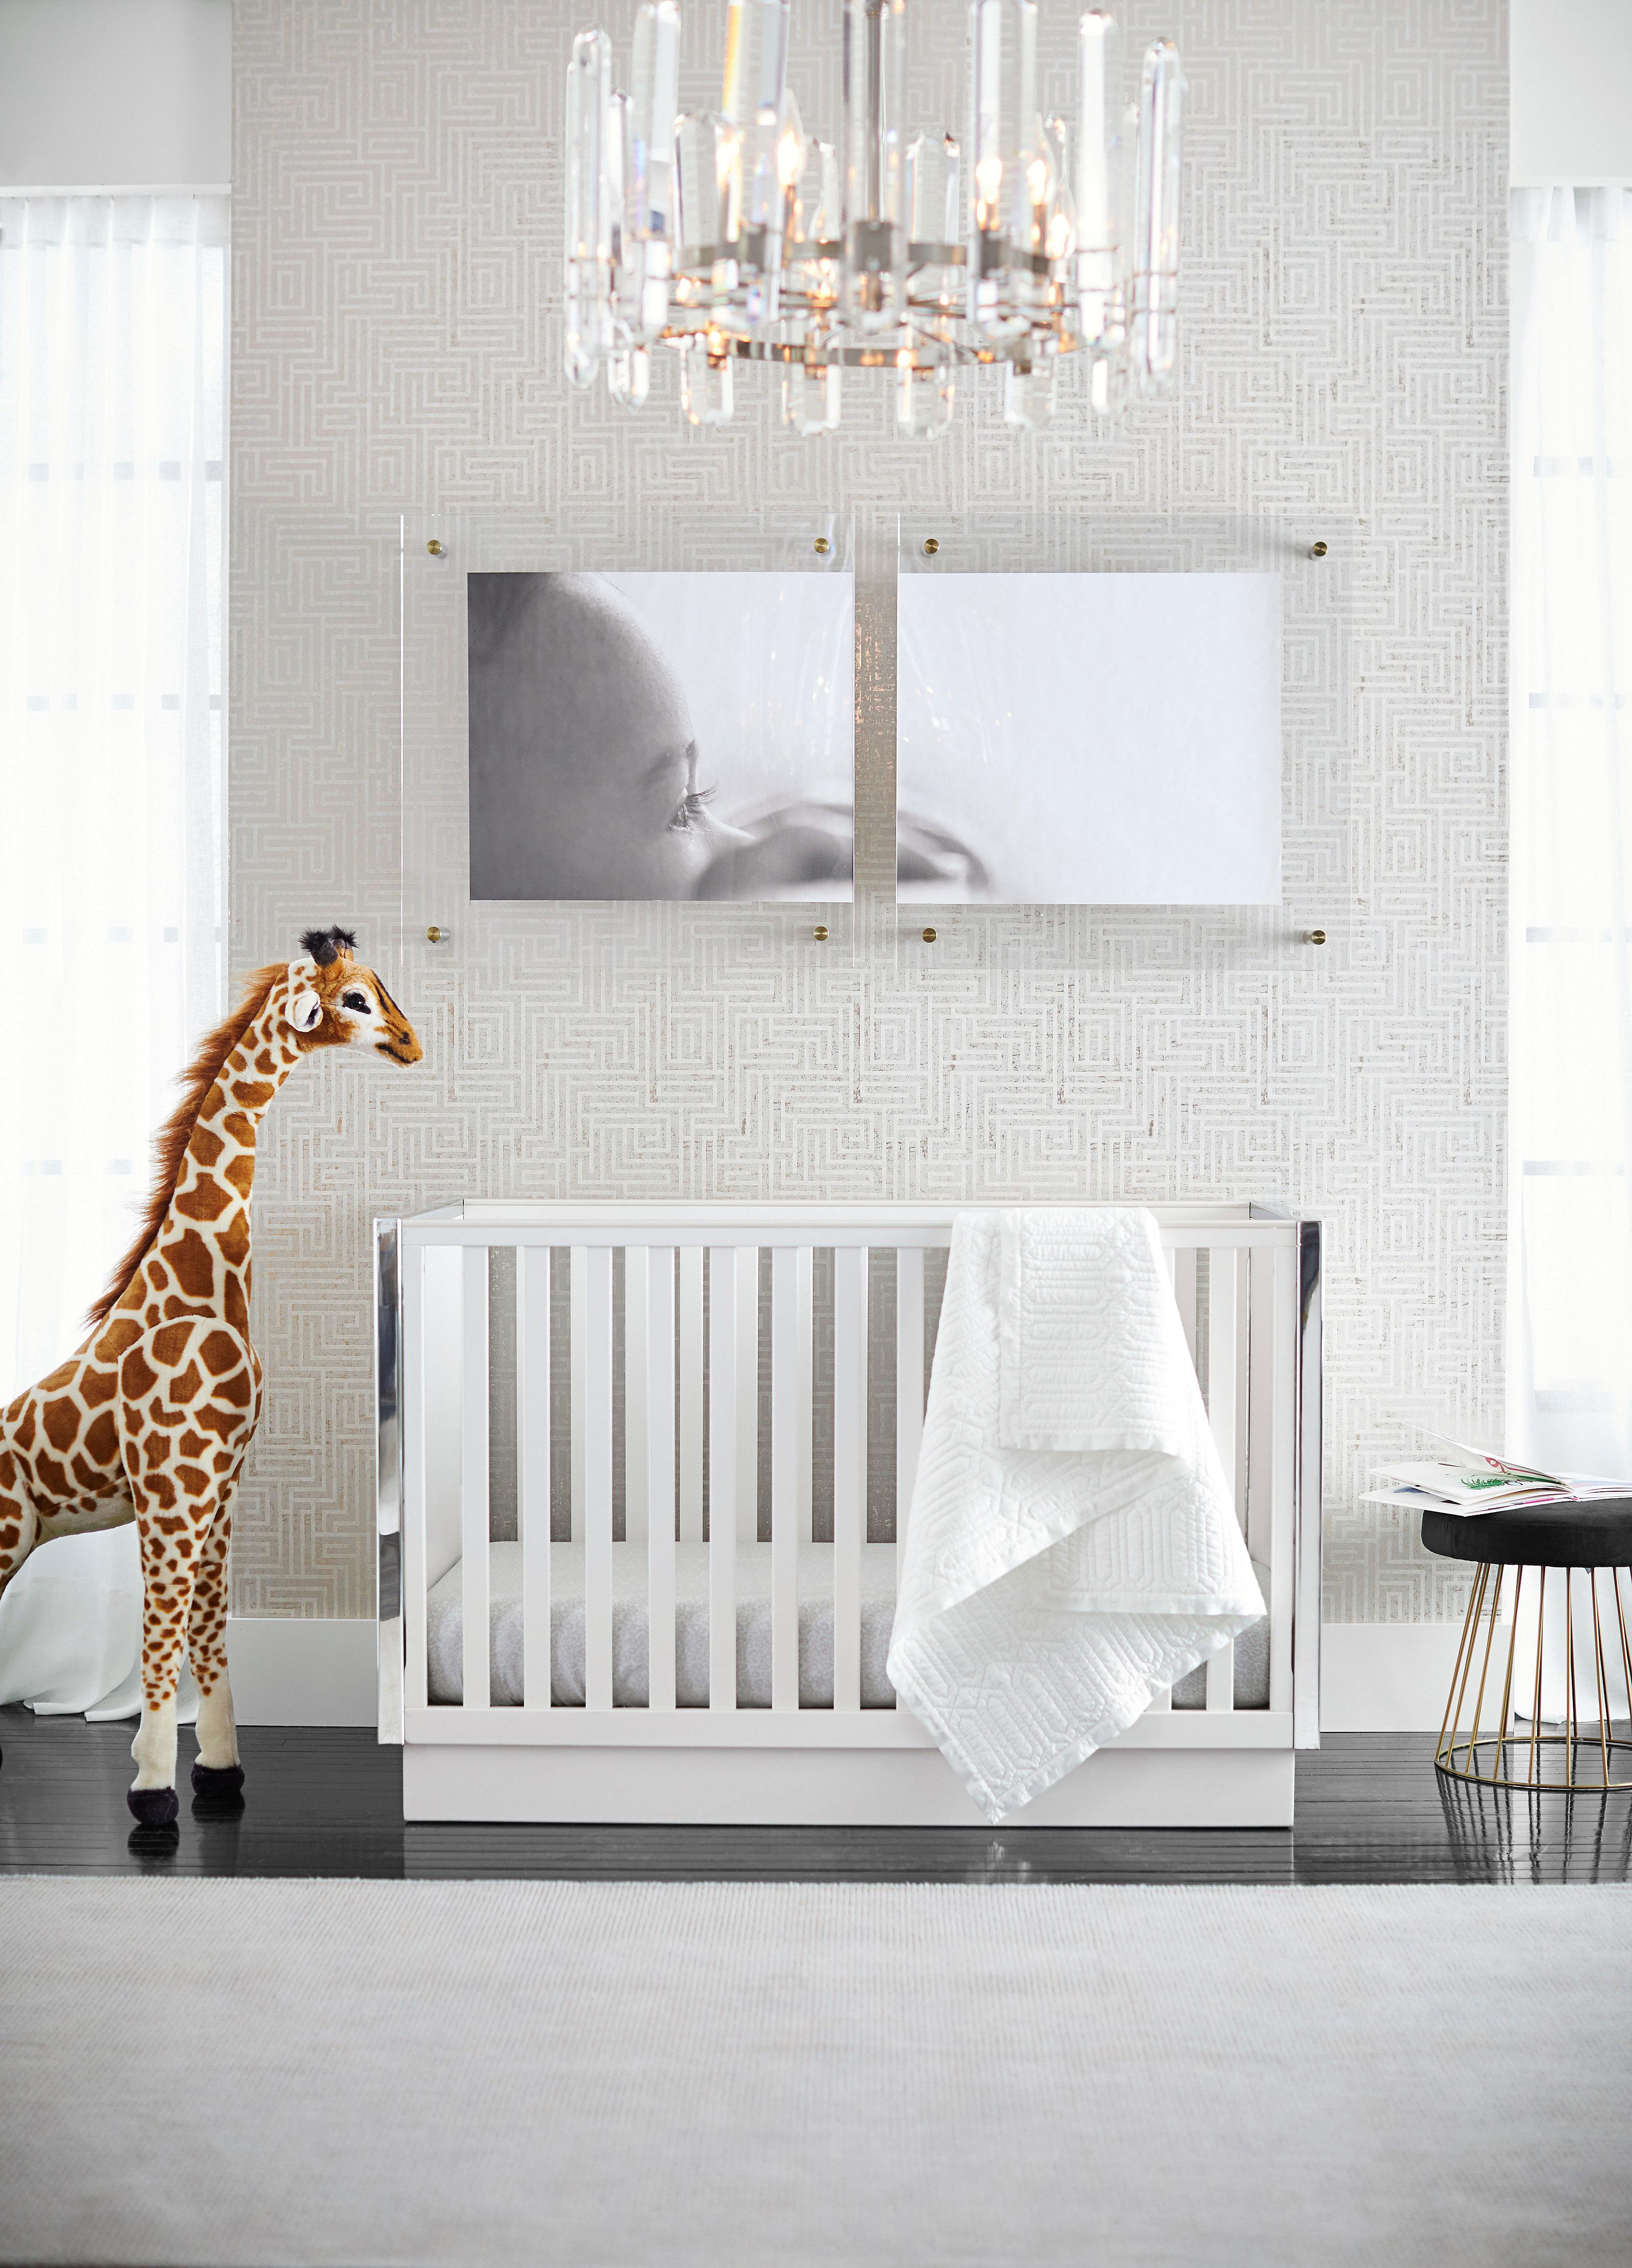 POTTERY BARN KIDS DEBUTS NEW HIGH-STYLE NURSERY COLLECTION